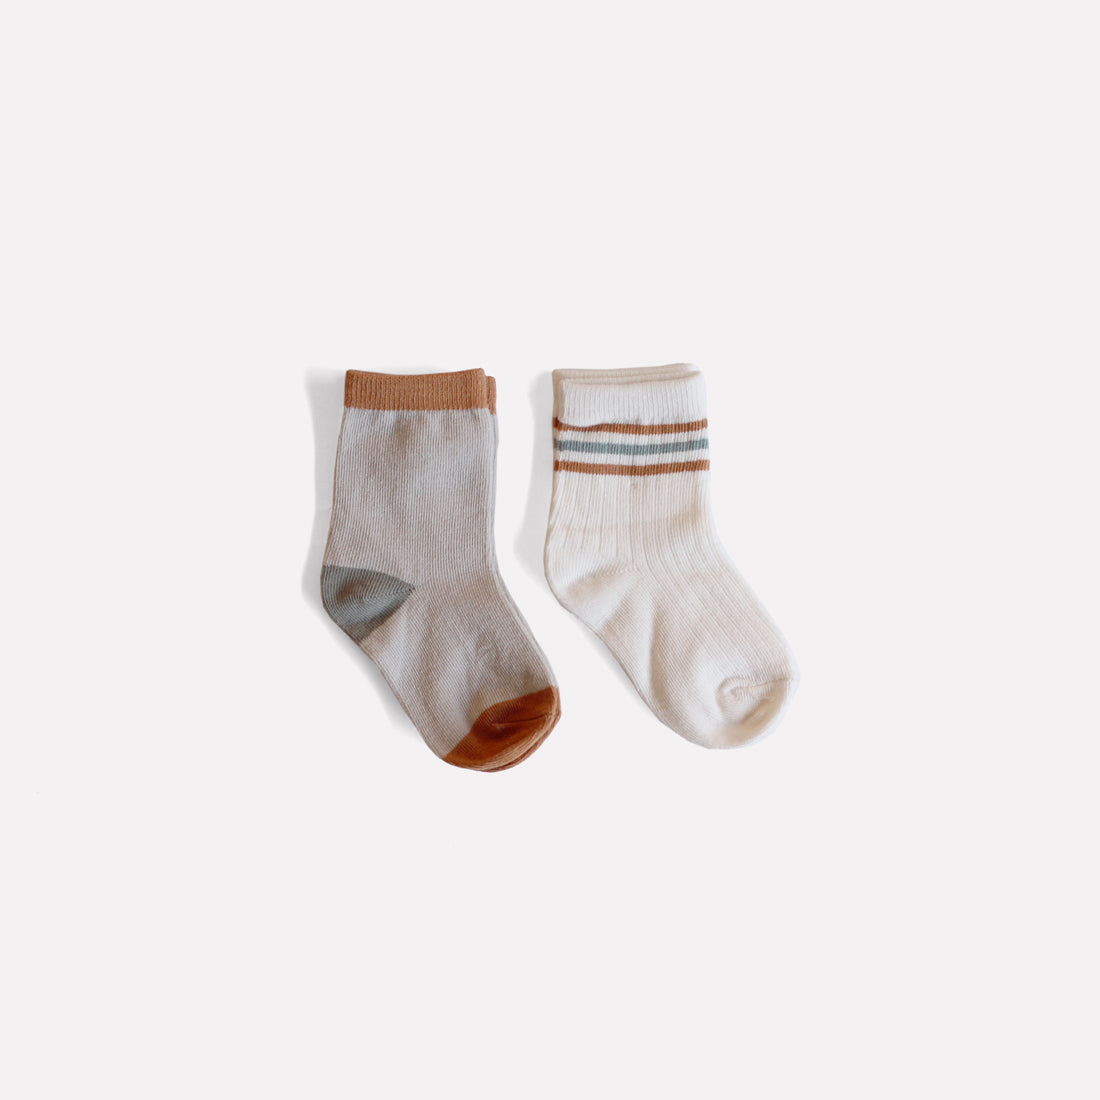 Organic Classic Crew Socks - Bronze & Sea Stripe Set